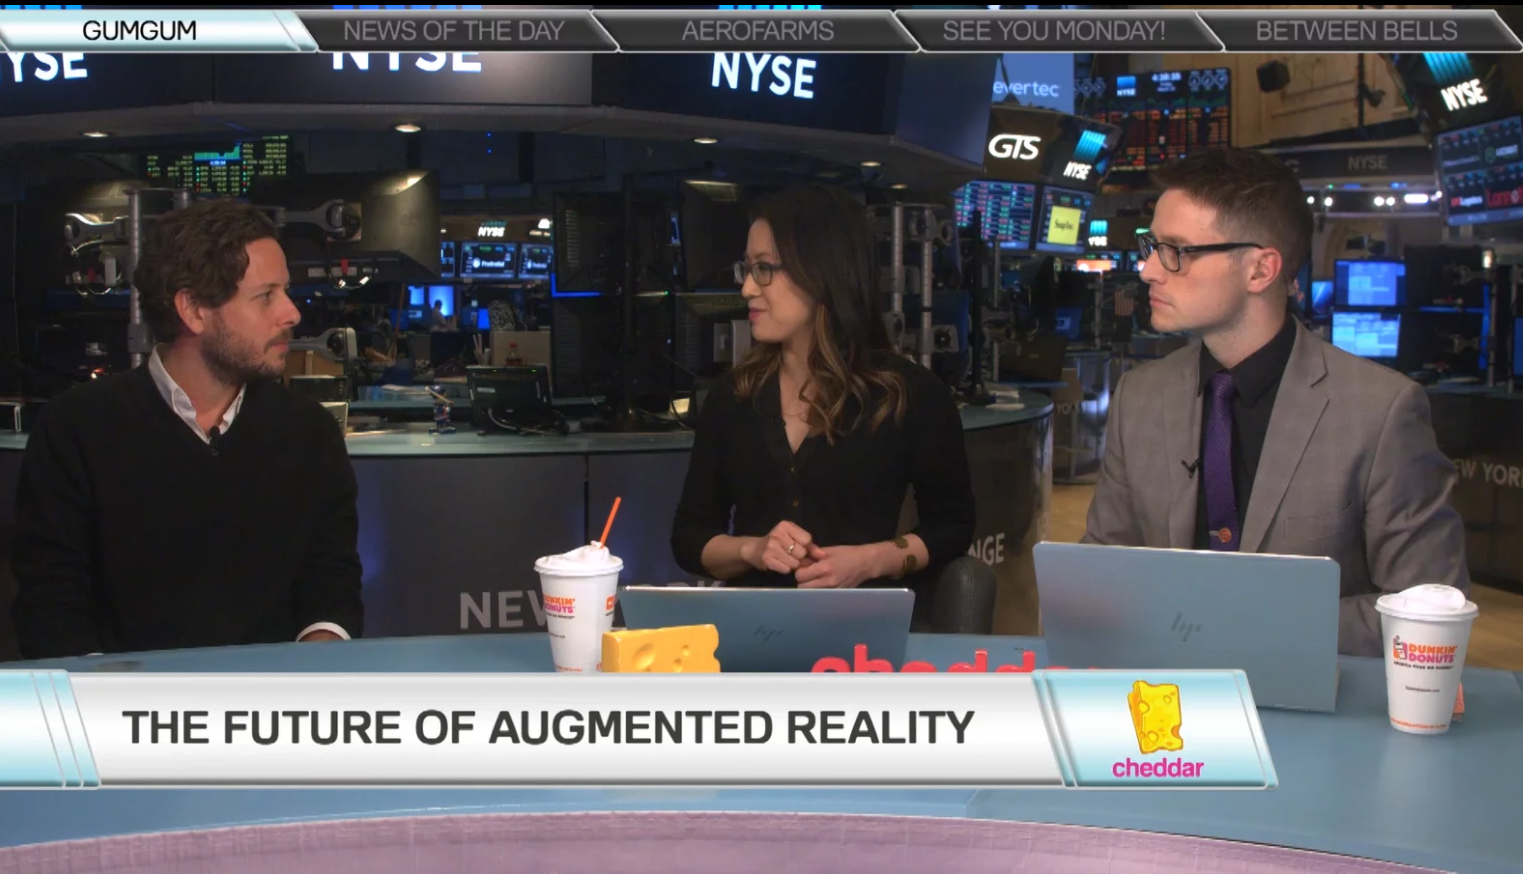 OPHIR TANZ CHATS AUGMENTED REALITY ON CHEDDAR LIVE